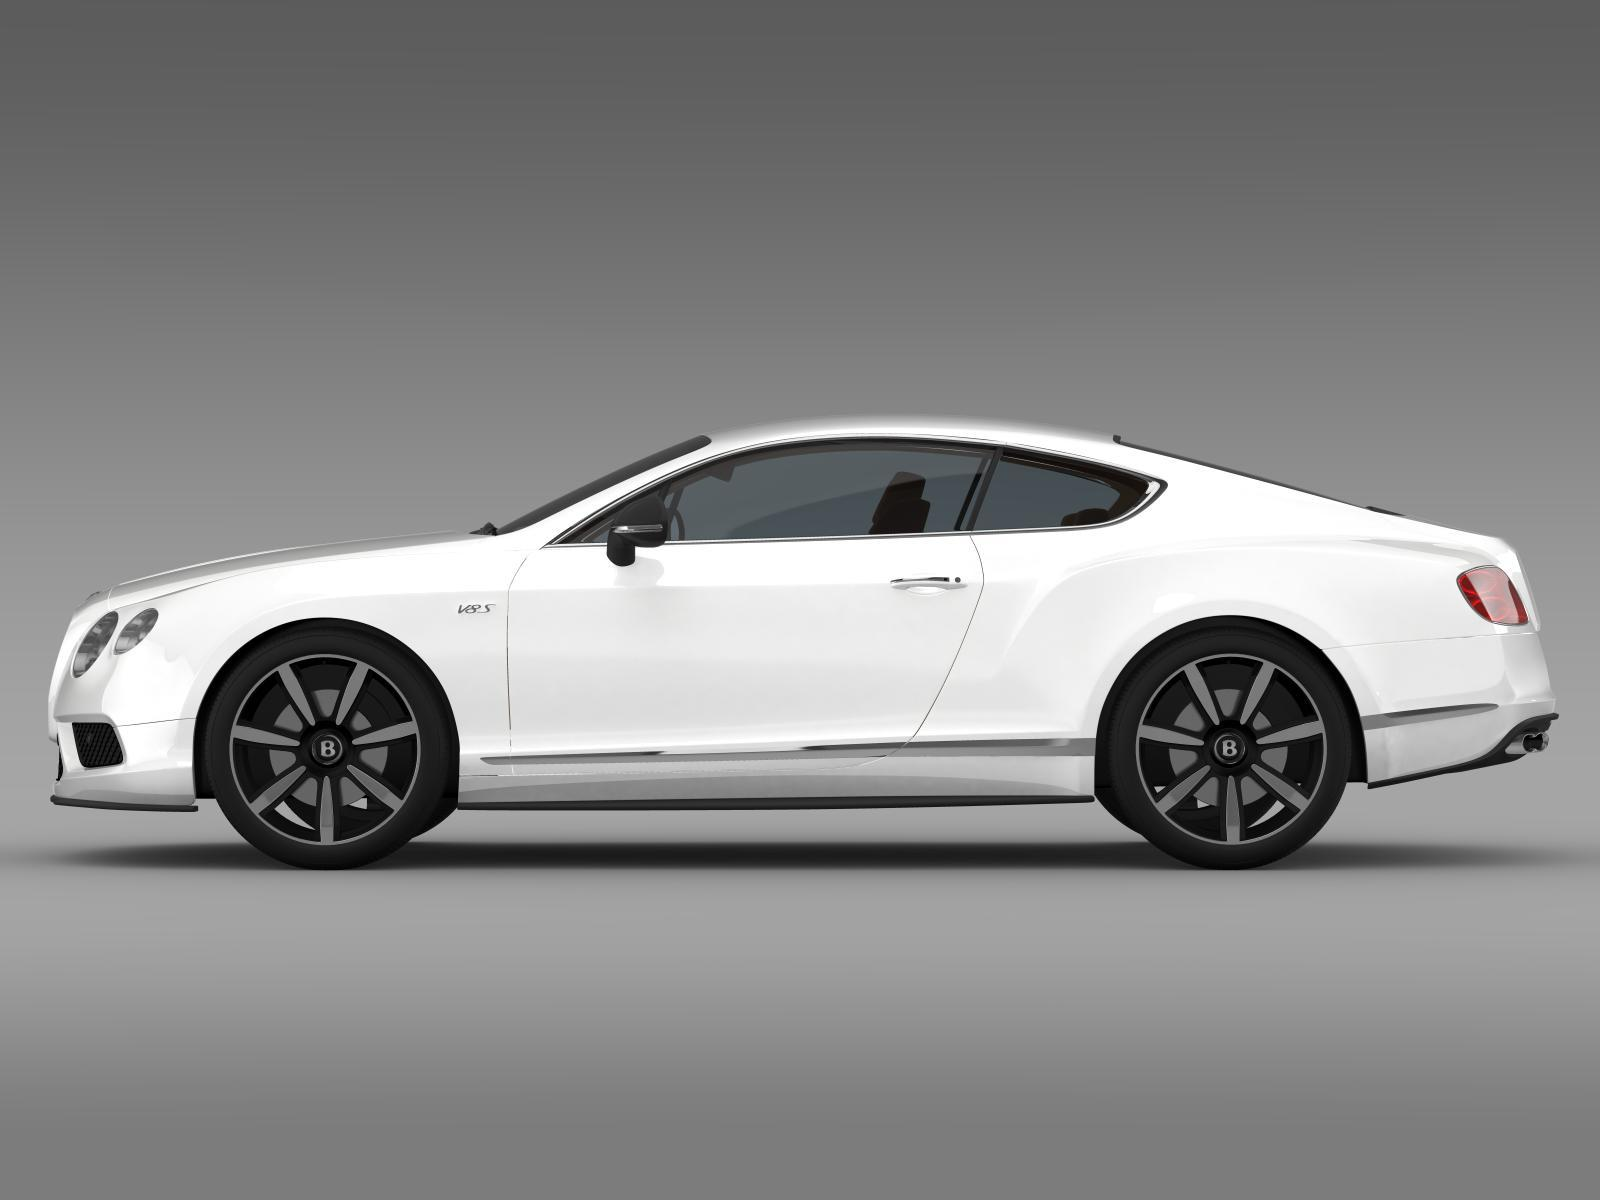 ... Continental GT V8 S Coupe 2014_ (7) Bentley Continental GT V8 S  Coupe 2014_ (8) Bentley Continental GT V8 S Coupe 2014_ (9)